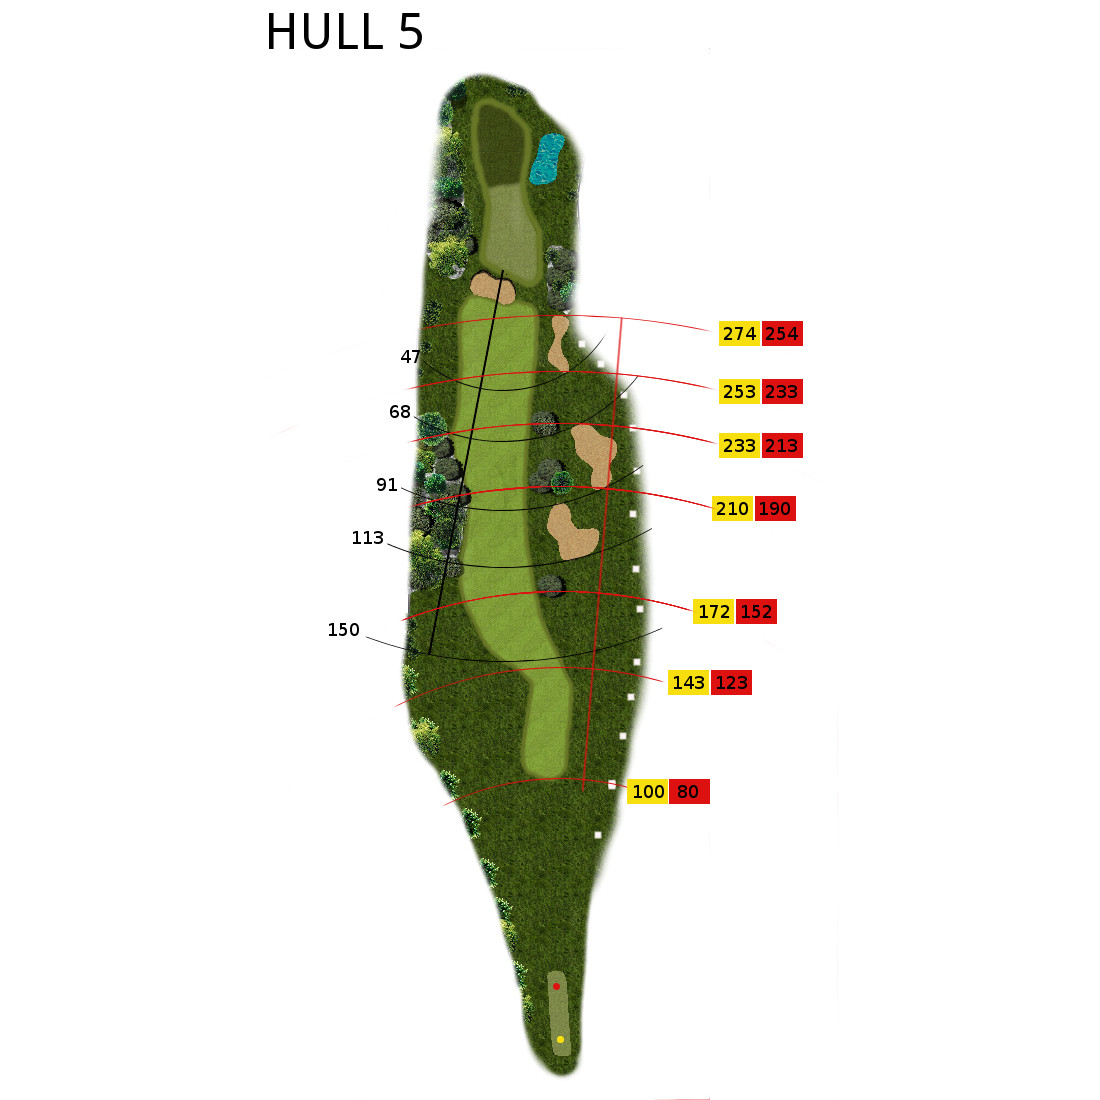 Hull 5 (Par 4, Indeks 4)